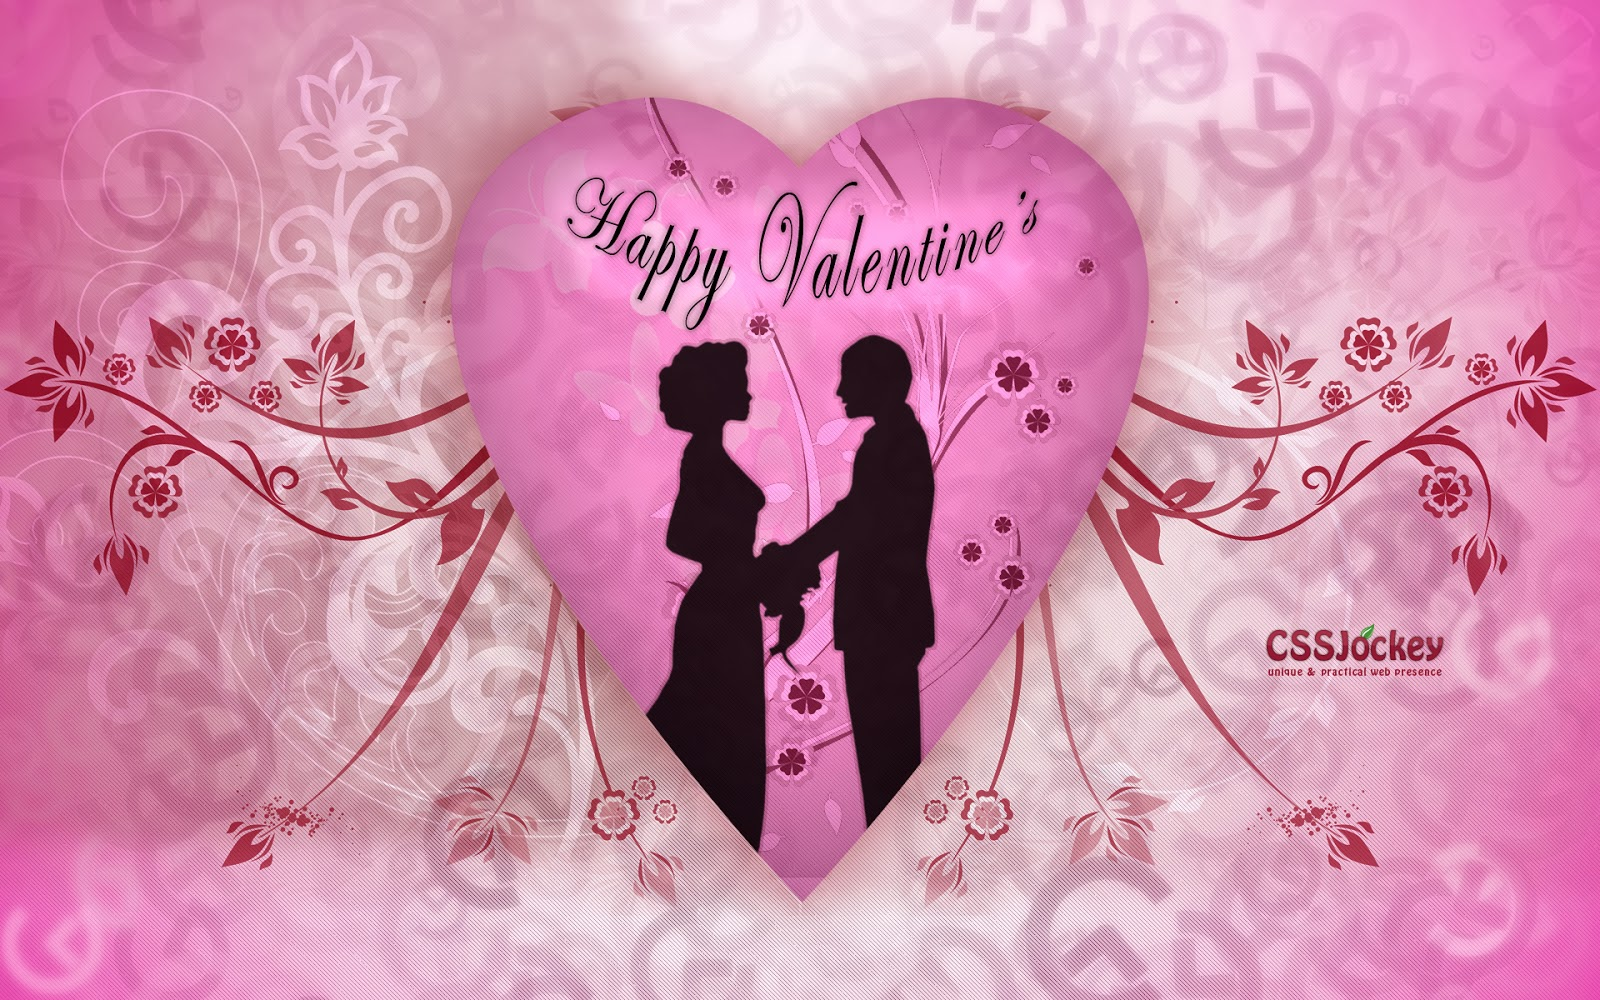 Happy Valentines Day Hearts Wallpapers Full HD For Desktop 2013